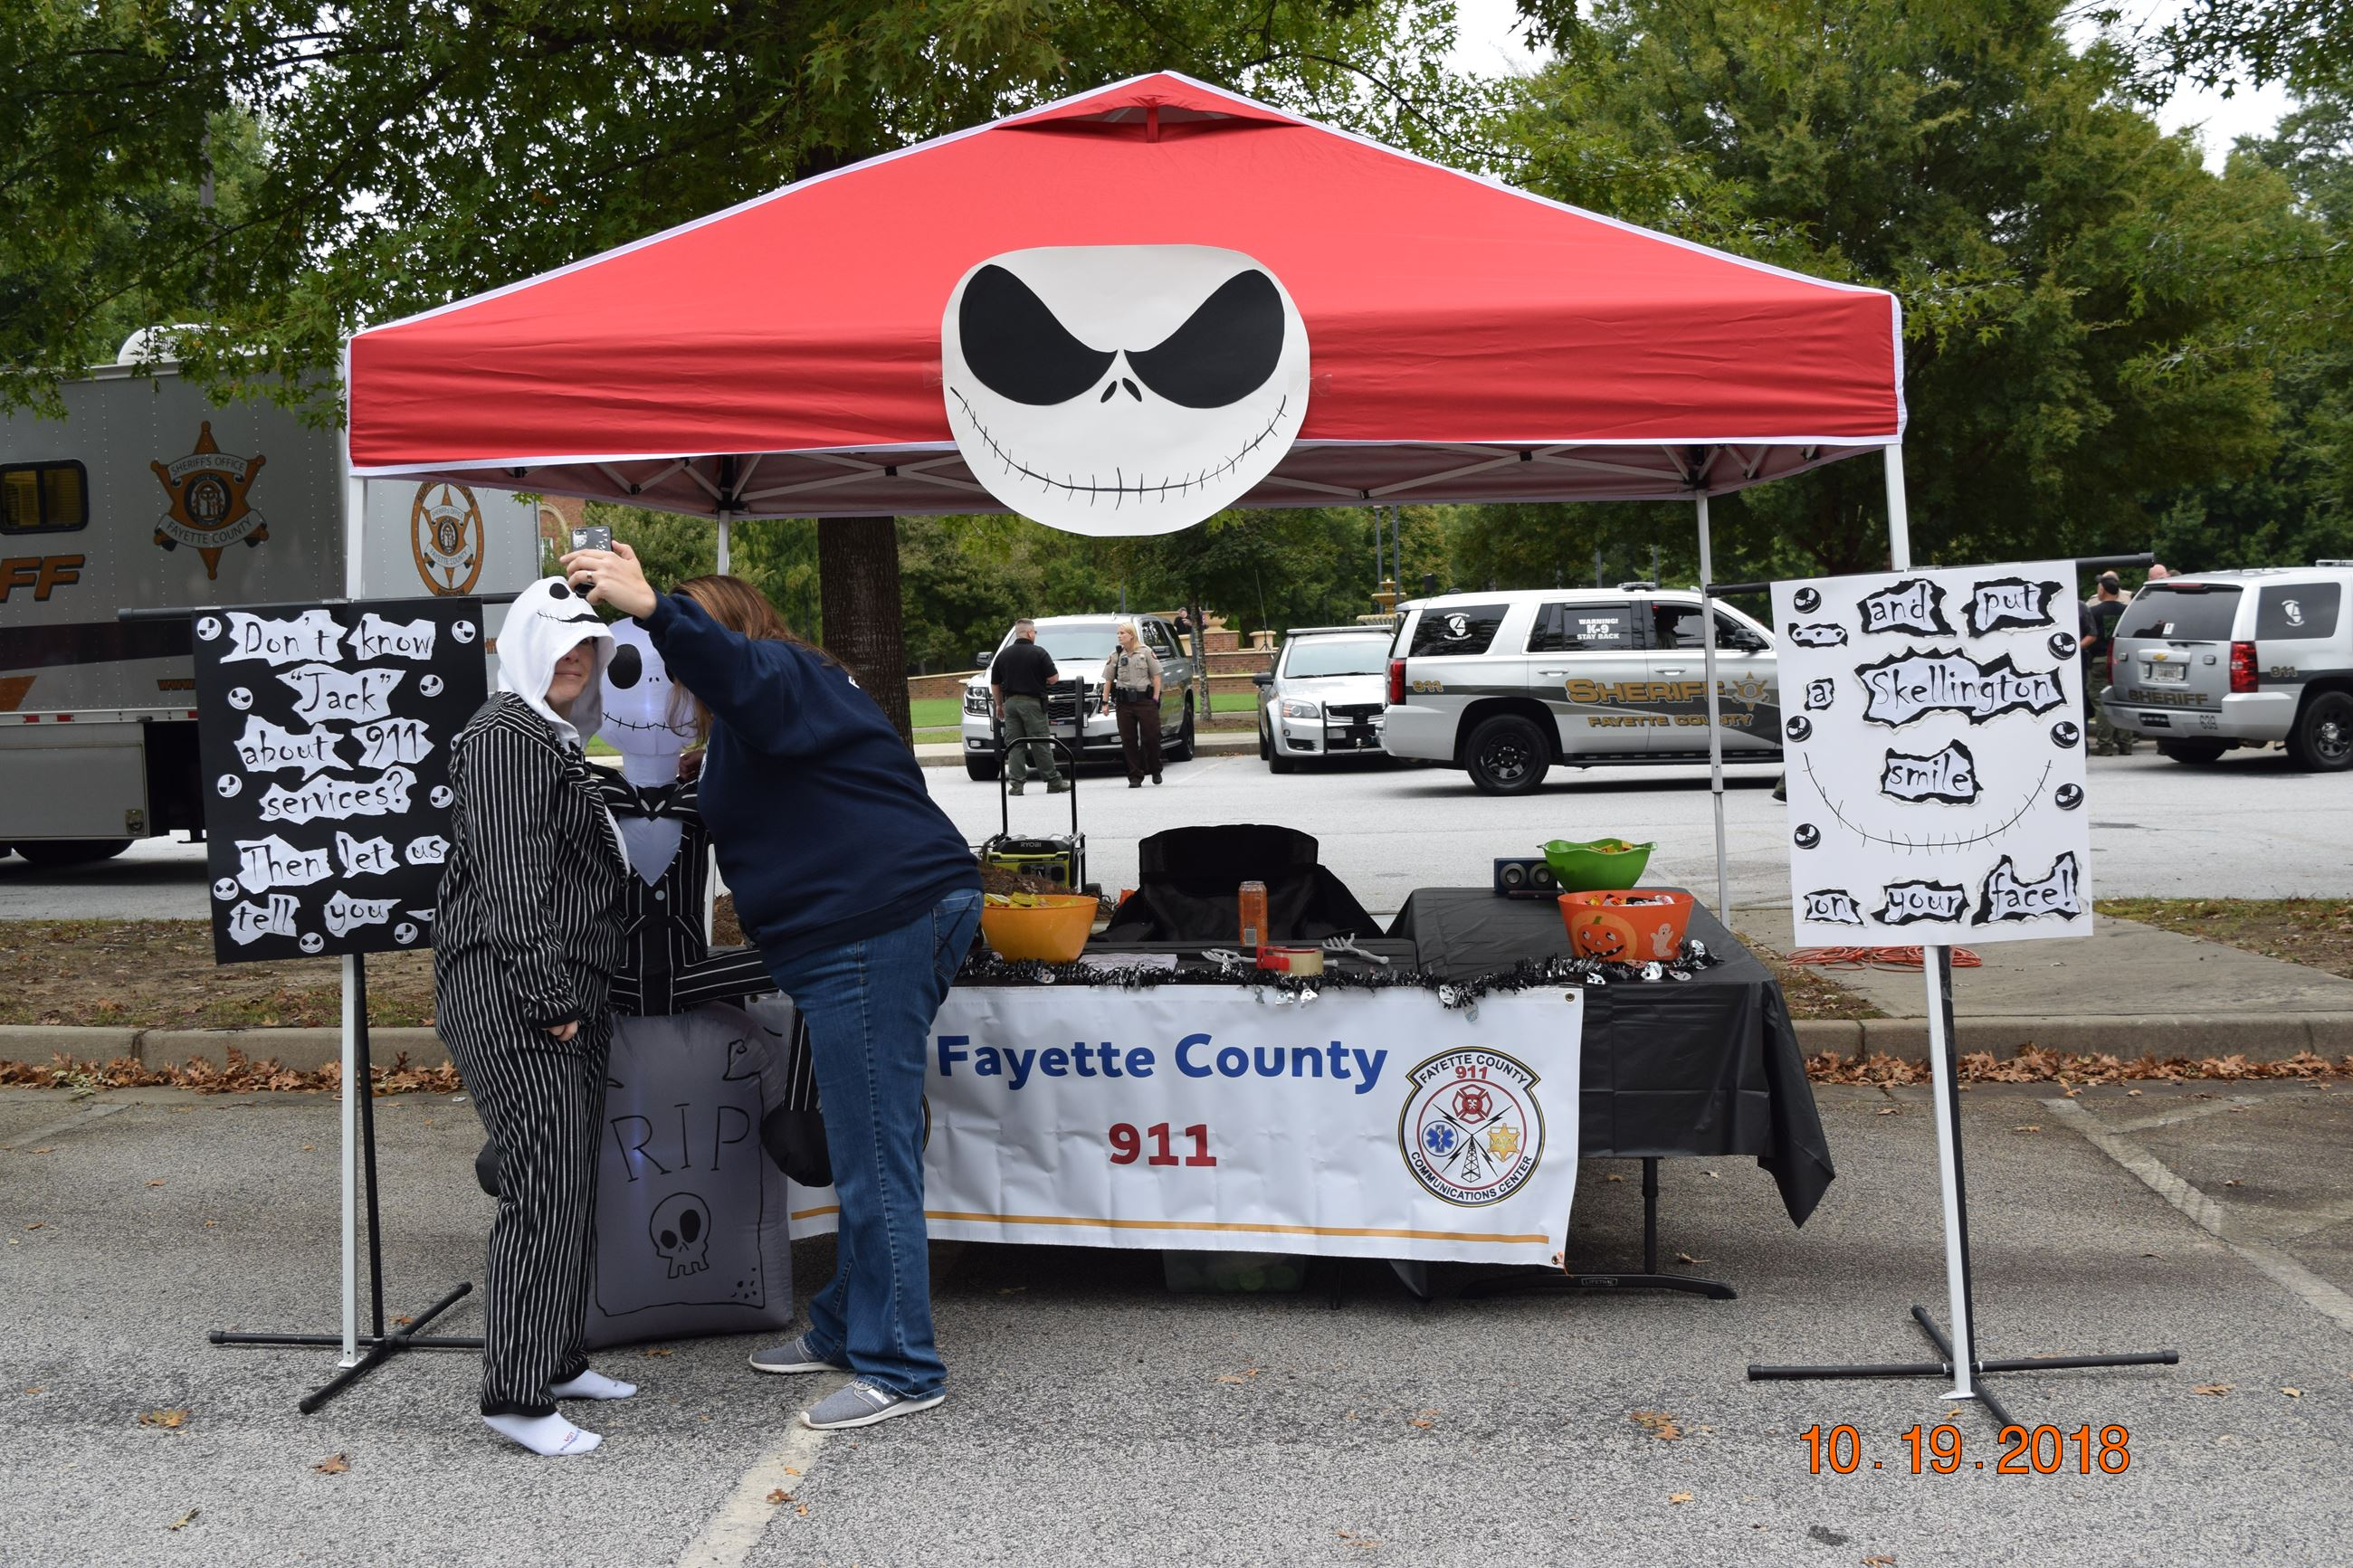 Fayette County 911 Booth